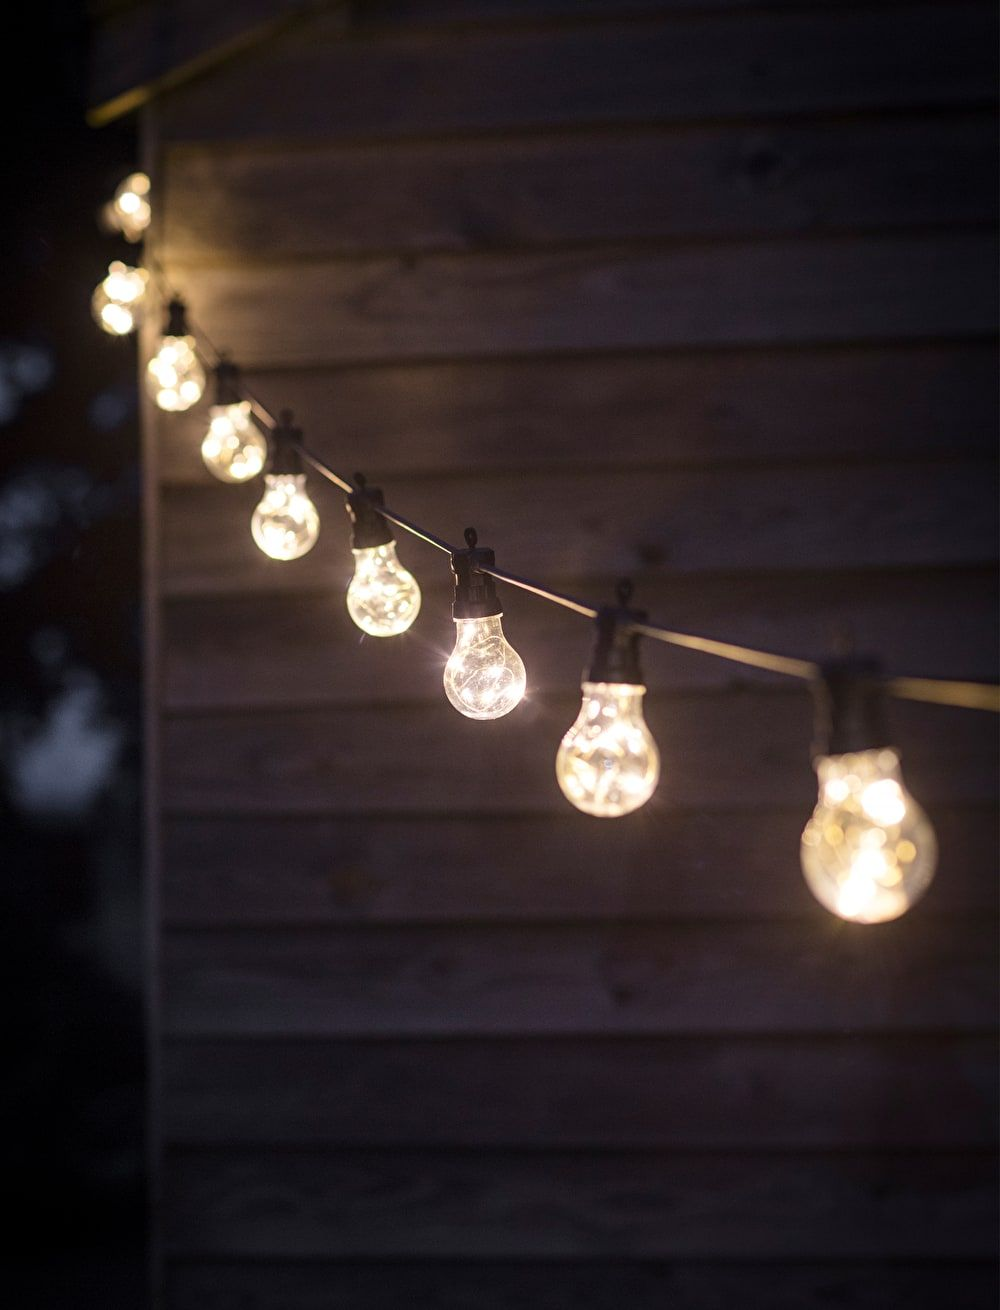 black festoon classic lights outdoor bulbs diy lighting solar garden decking